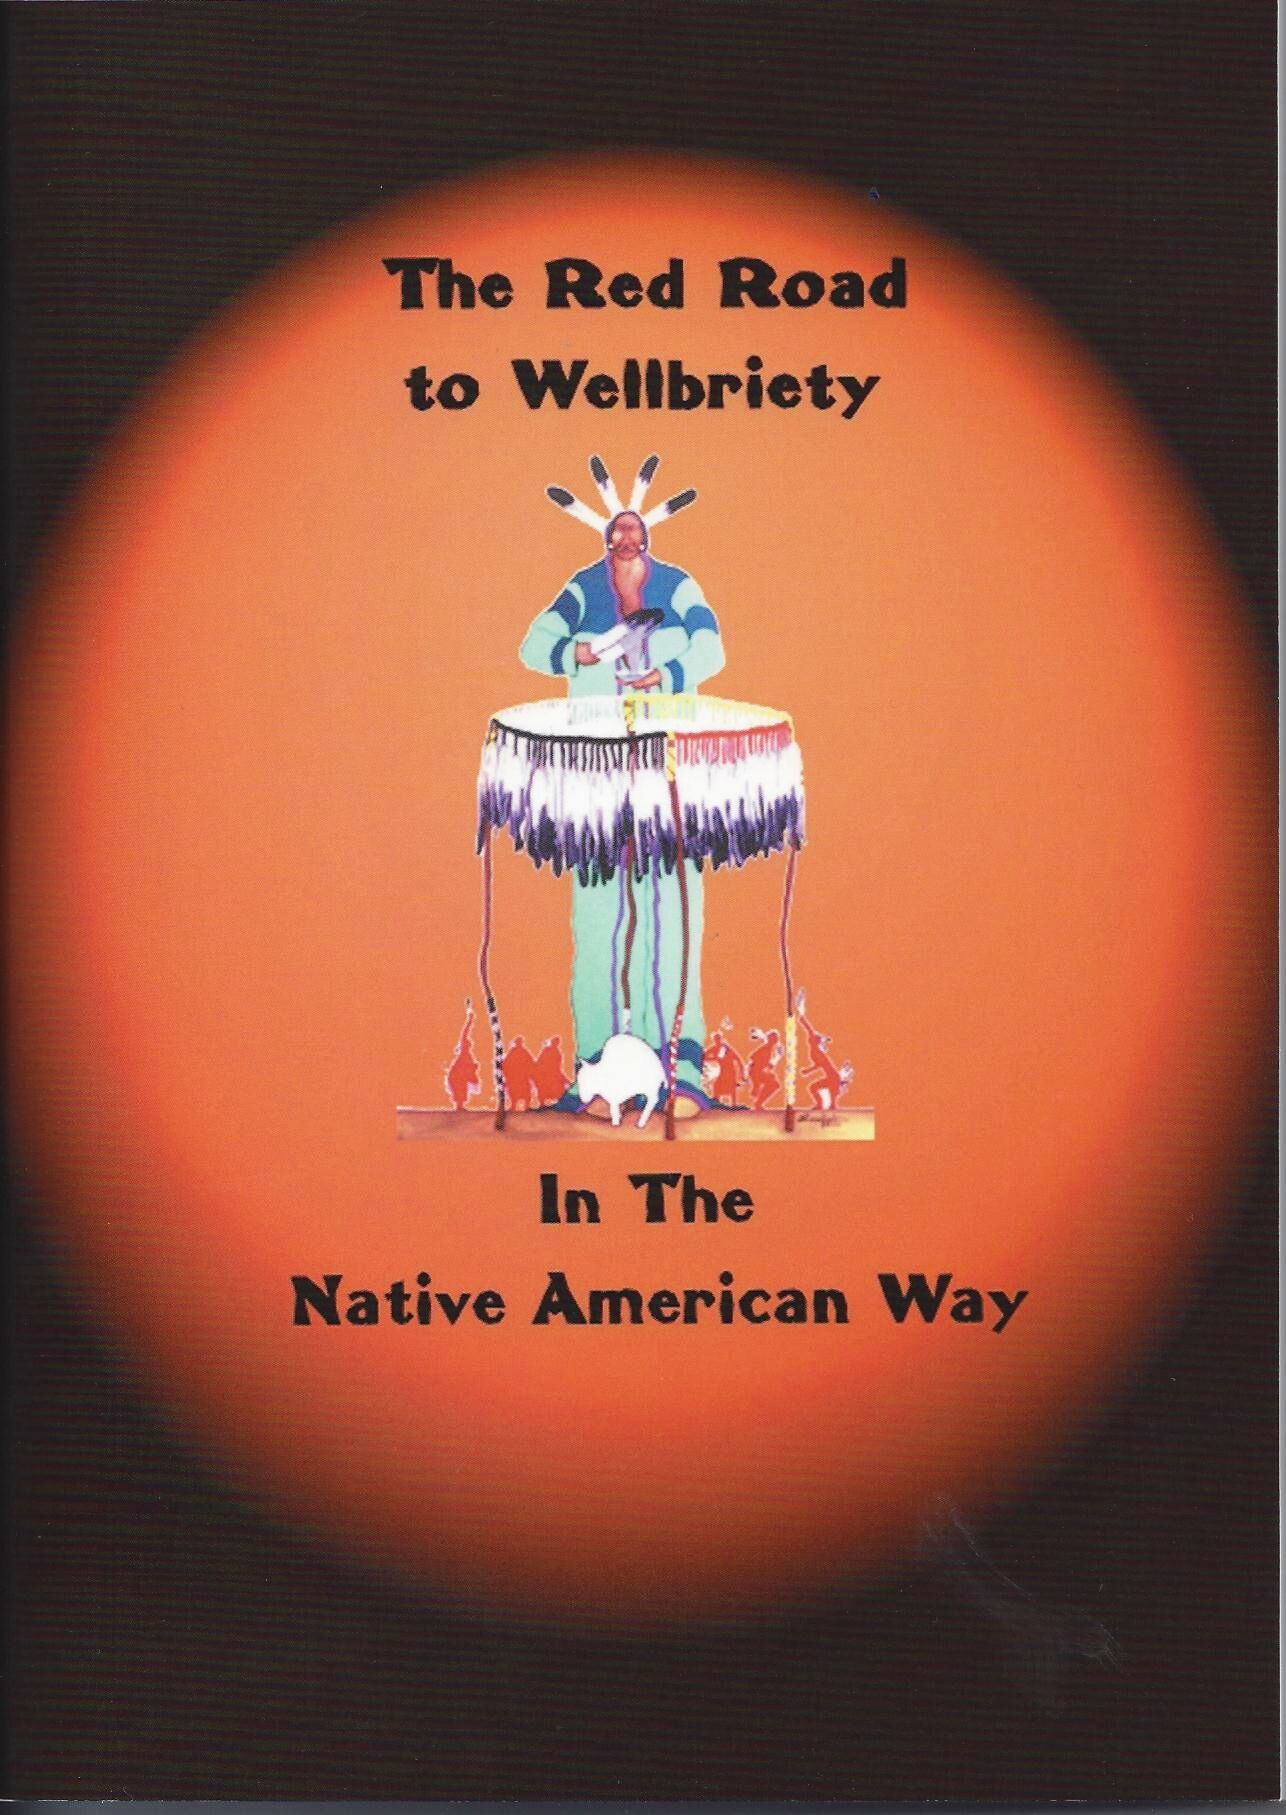 The Red Road to Wellbriety in the Native American Way